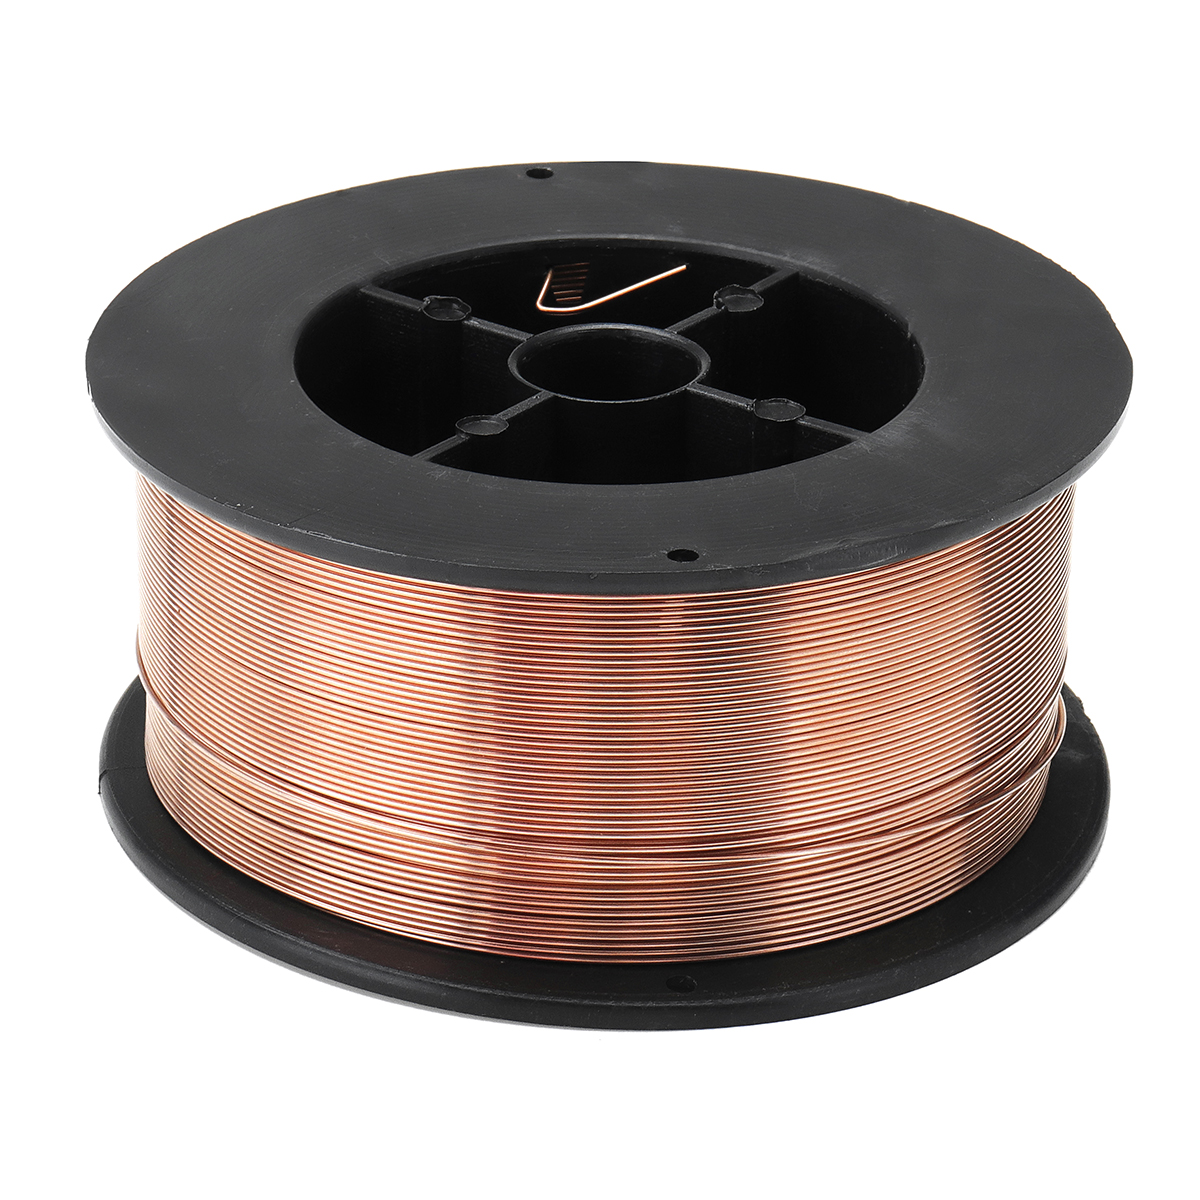 "2 Lb x 0.023/"" 0.6 mm ER70S-6 4 SPOOLS MIG Mild /& Low Alloy Steel Wire"